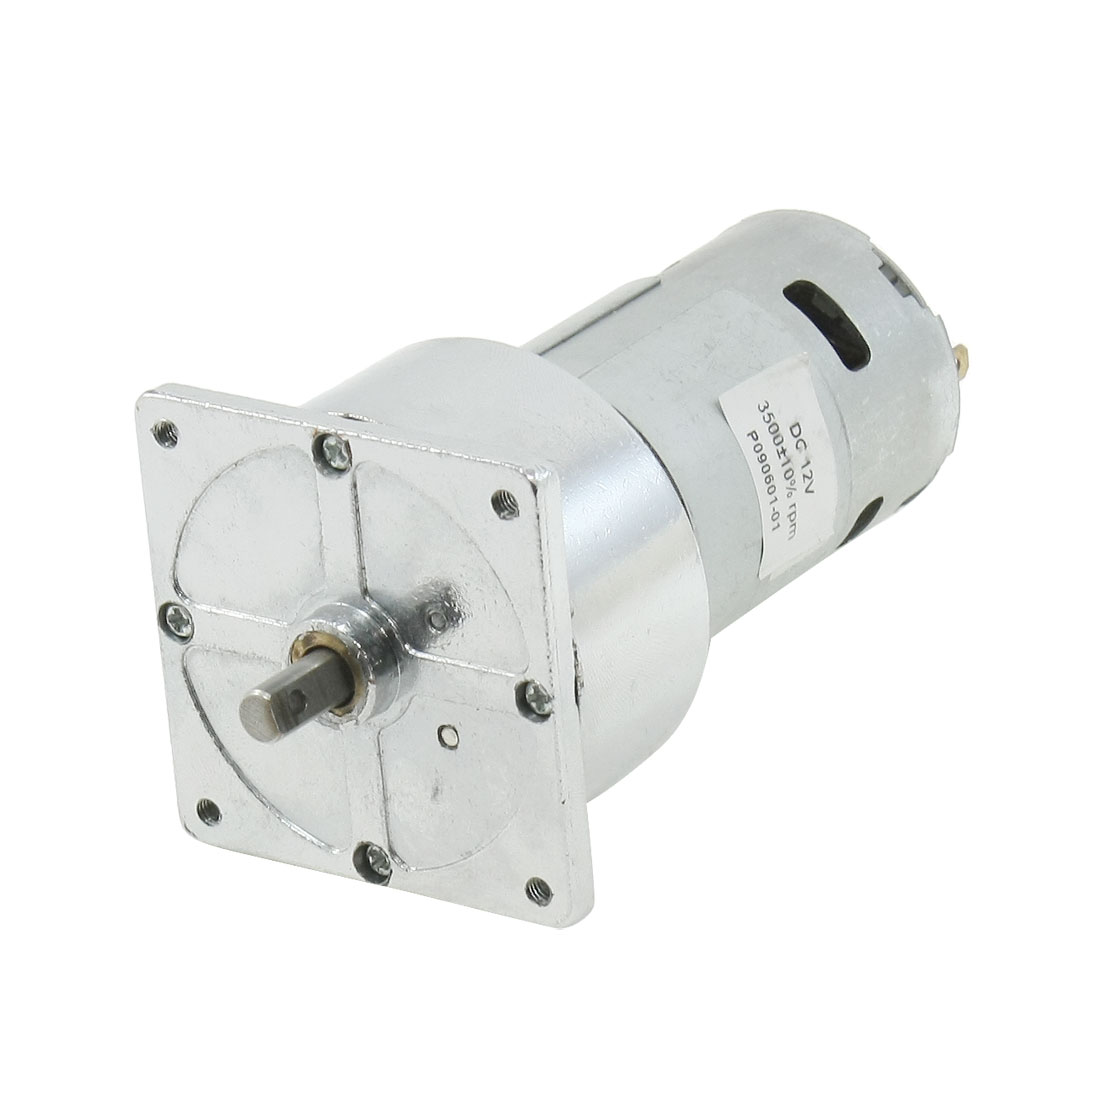 12V 3500RPM 2 Pole Connector Cylindrical Permanent Magnet DC Motor